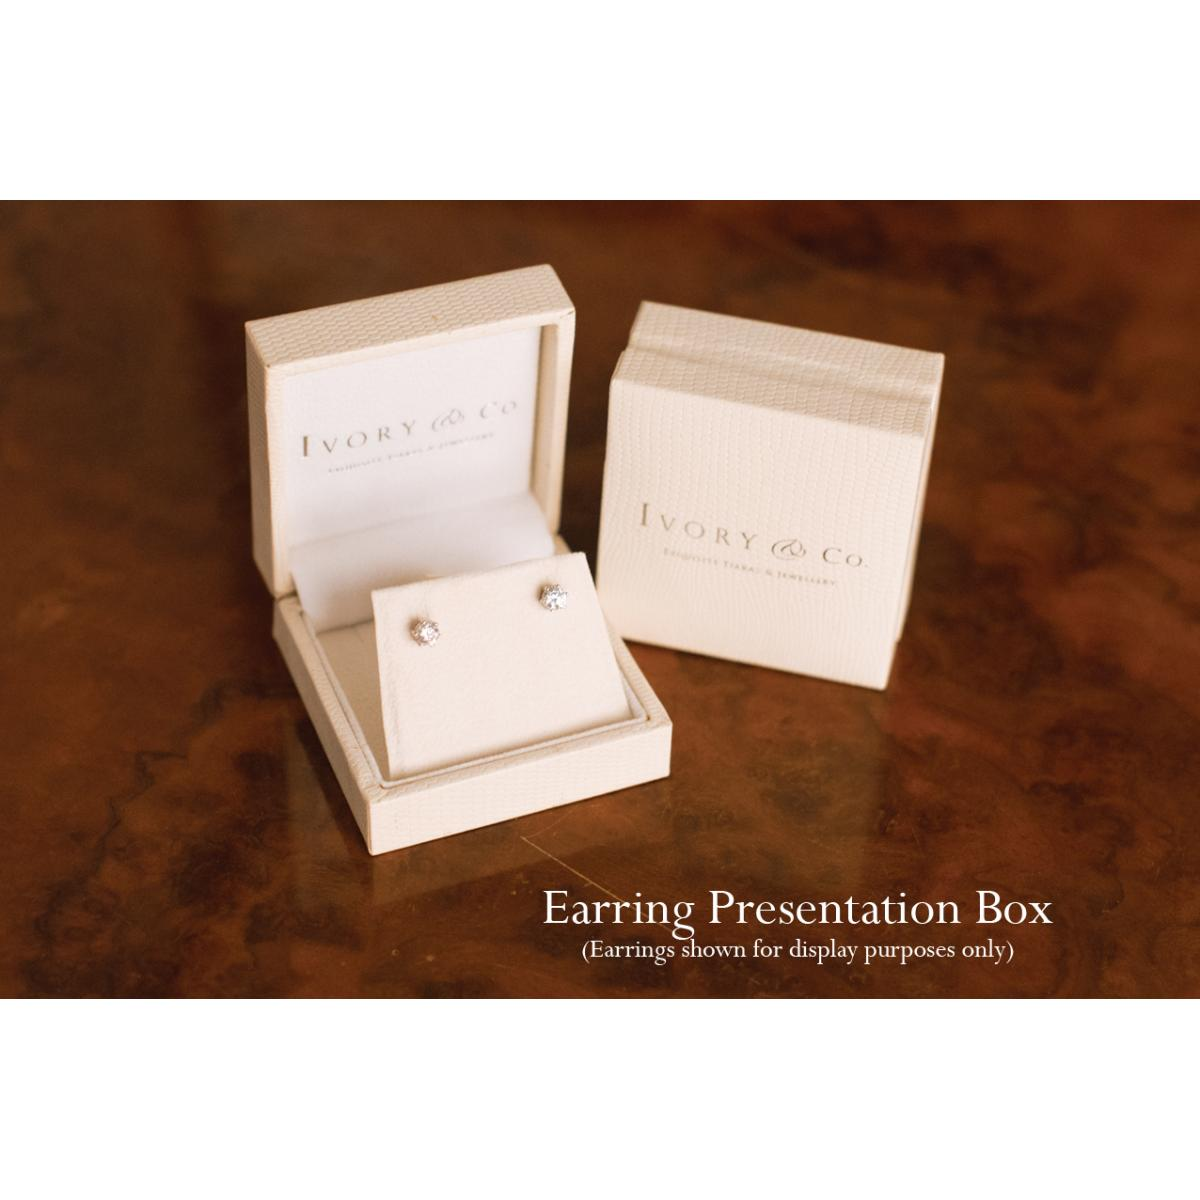 Ivory and Co Lisbon Earrings